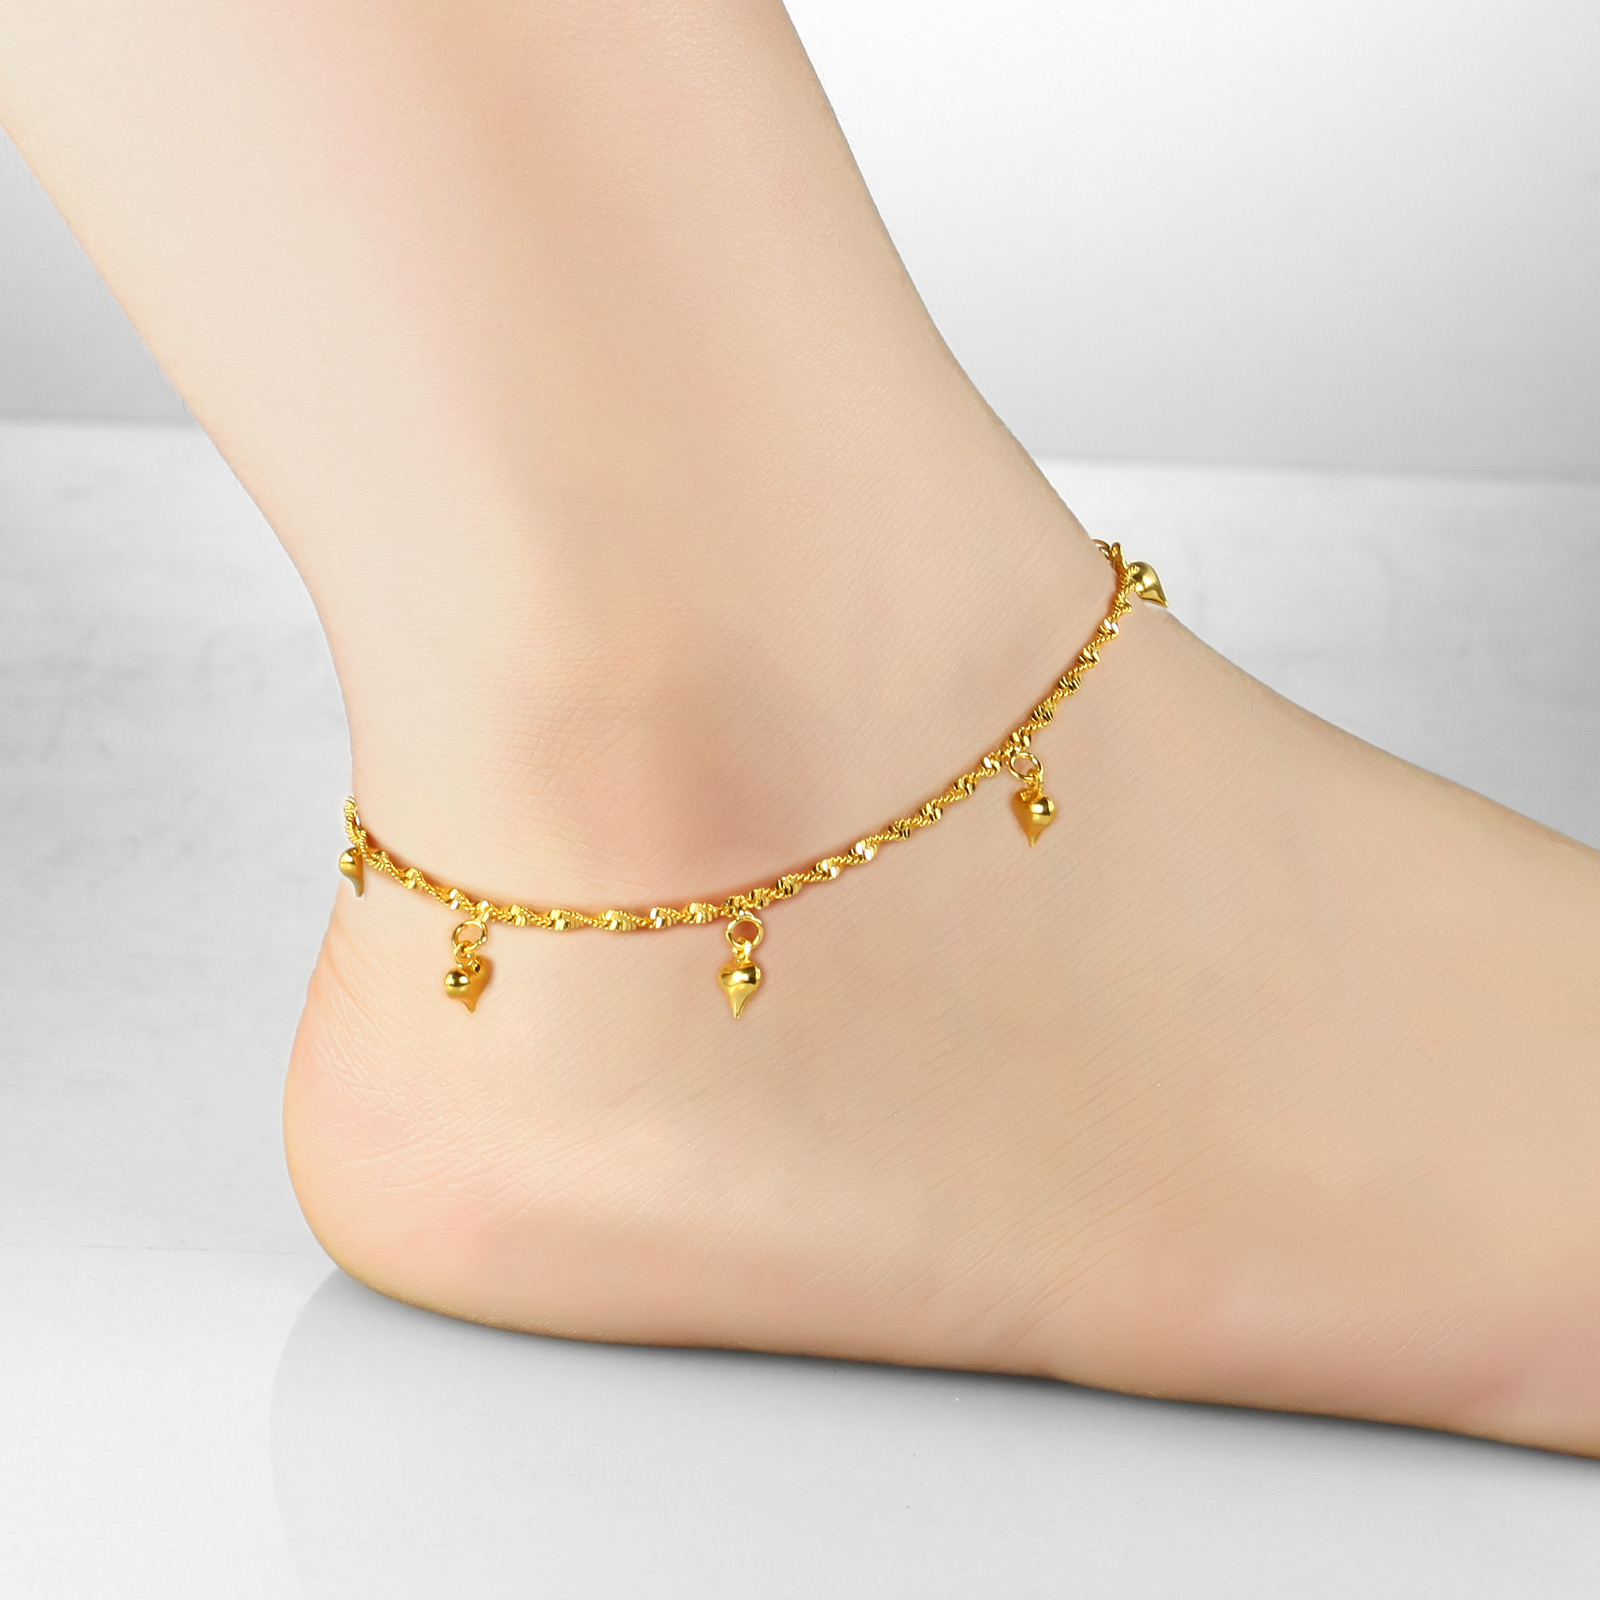 anklet nationtrendz girls ideas jewelry new com wearing anklets ladies for designer designs